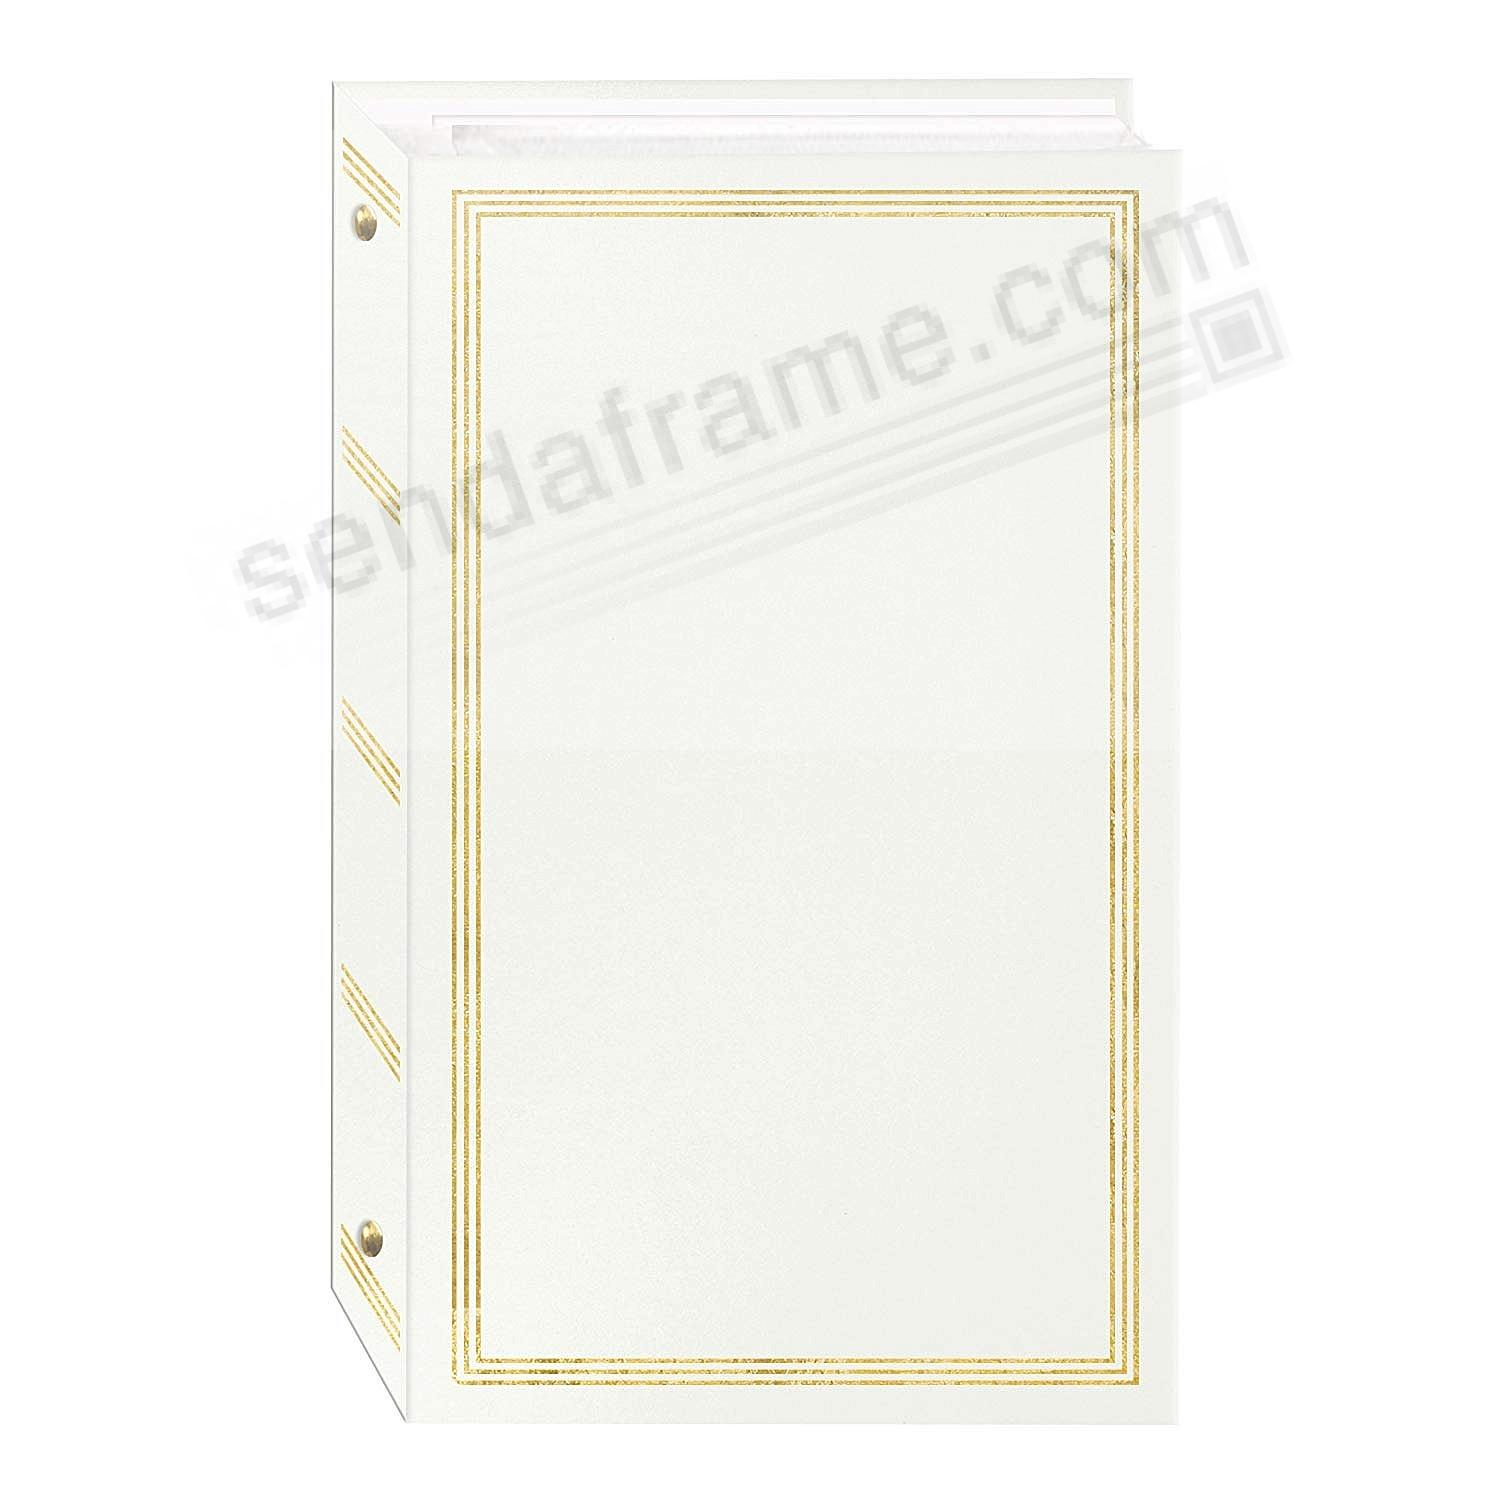 3-ring slip-in pocket WHITE binder album for 300+ 4x6 photos